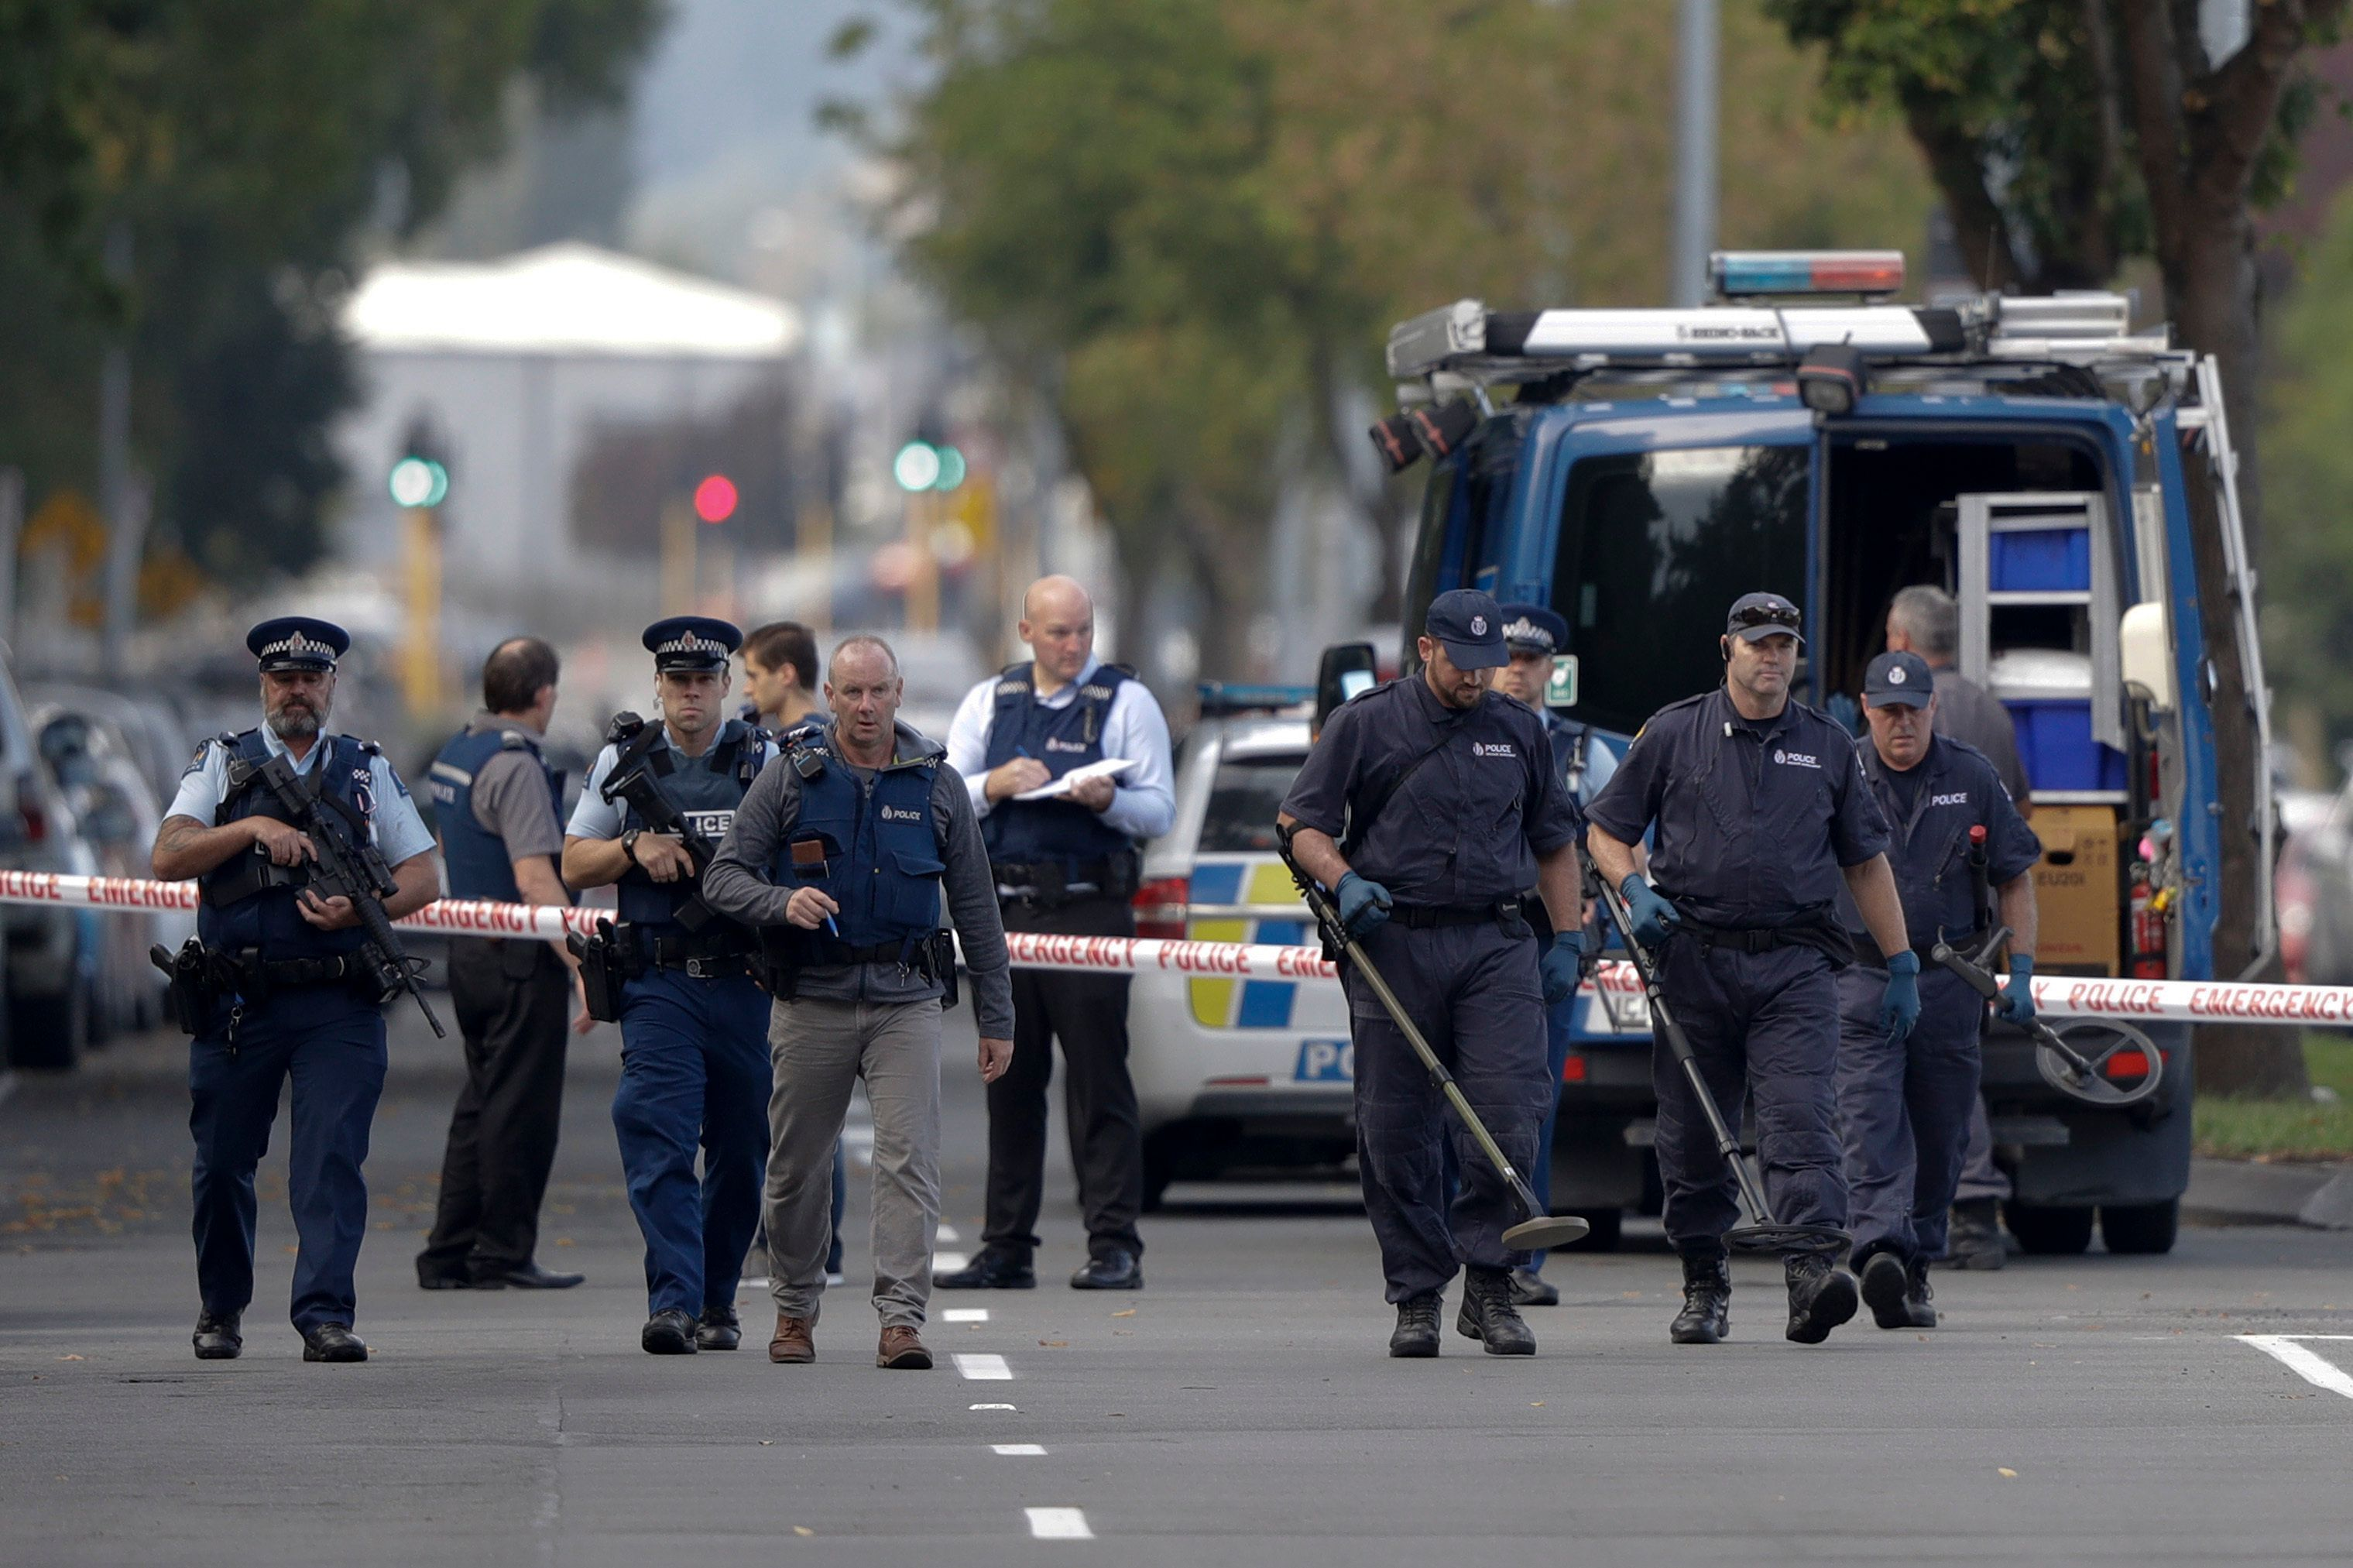 Police officers search the area near the Masjid Al Noor mosque, site of one of the mass shootings at two mosques in Christchurch, New Zealand, Saturday, March 16, 2019. (AP Photo/Mark Baker)